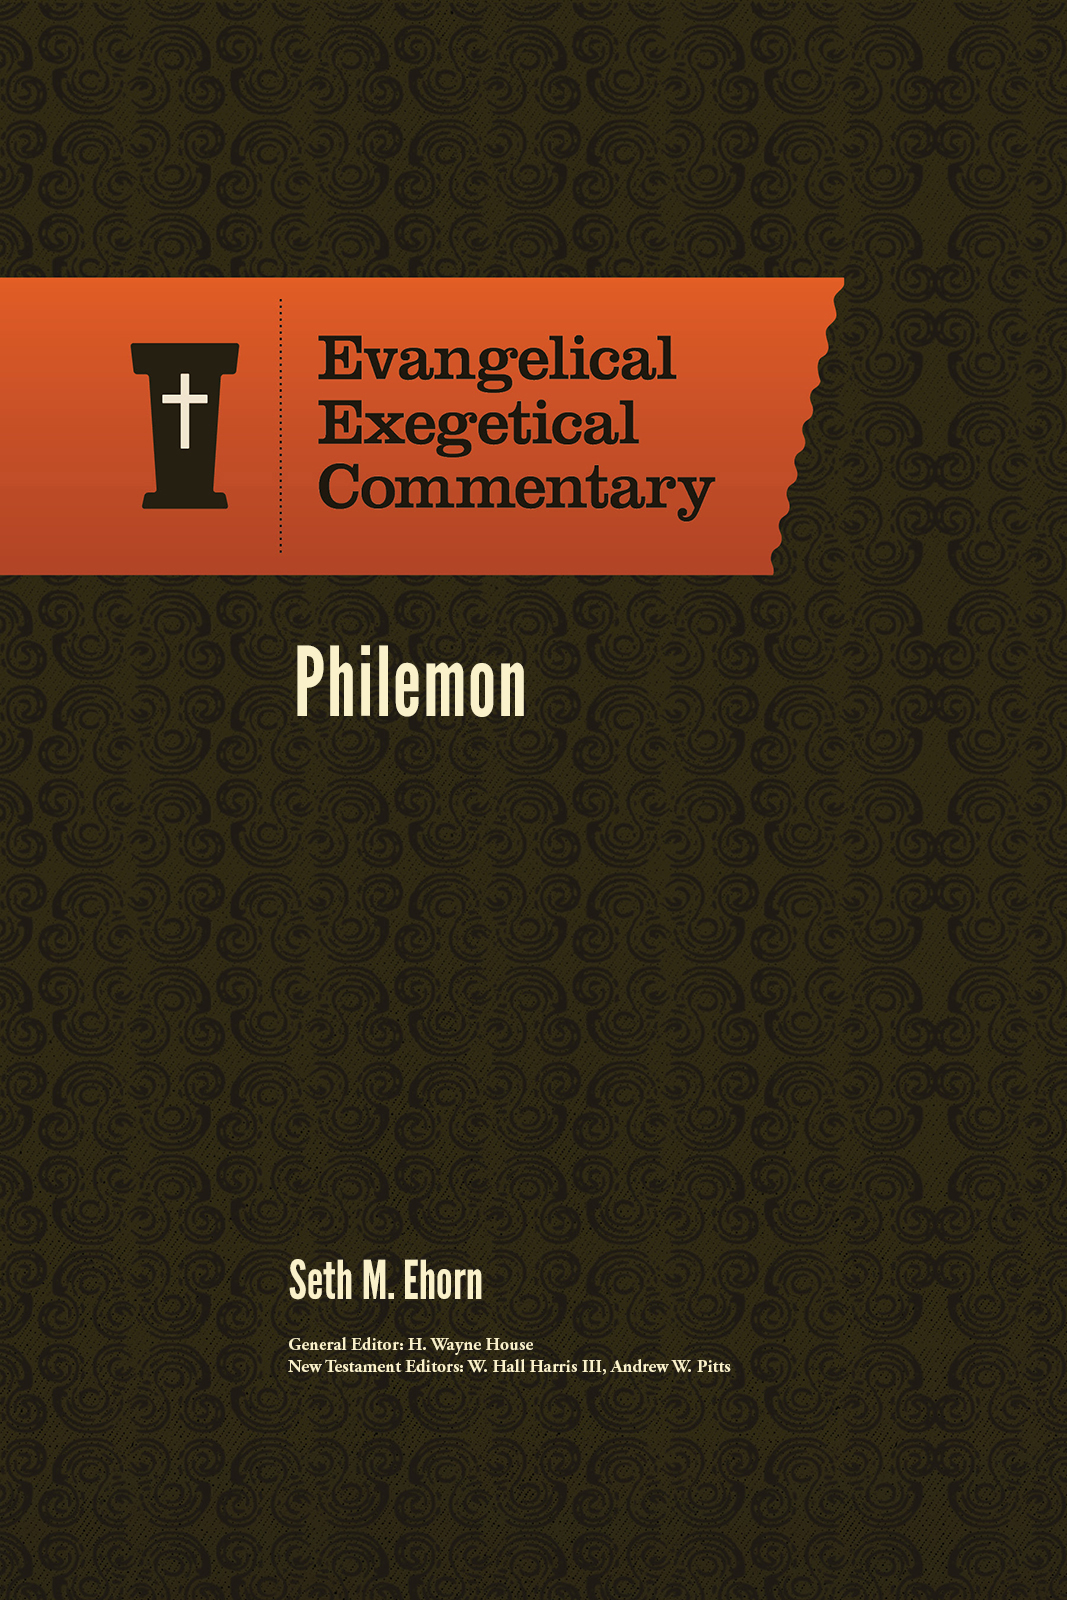 Philemon: Evangelical Exegetical Commentary (EEC)